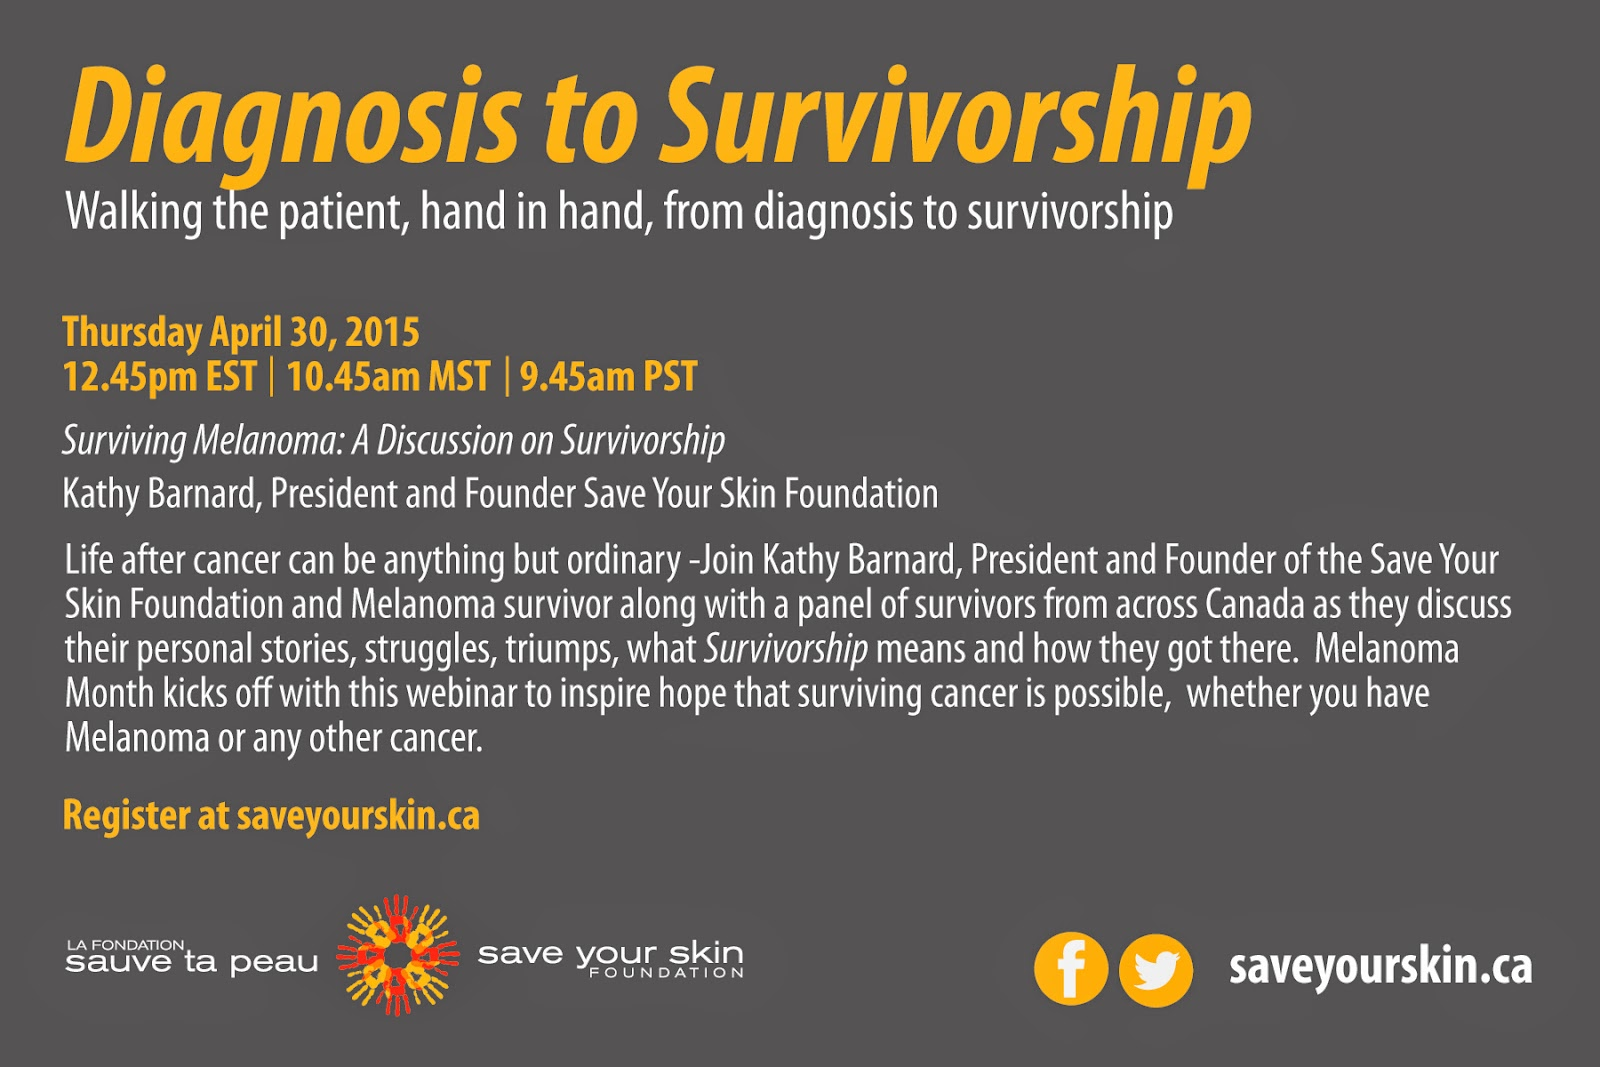 http://www.saveyourskin.ca/events/webinar-melanoma-survivorship/